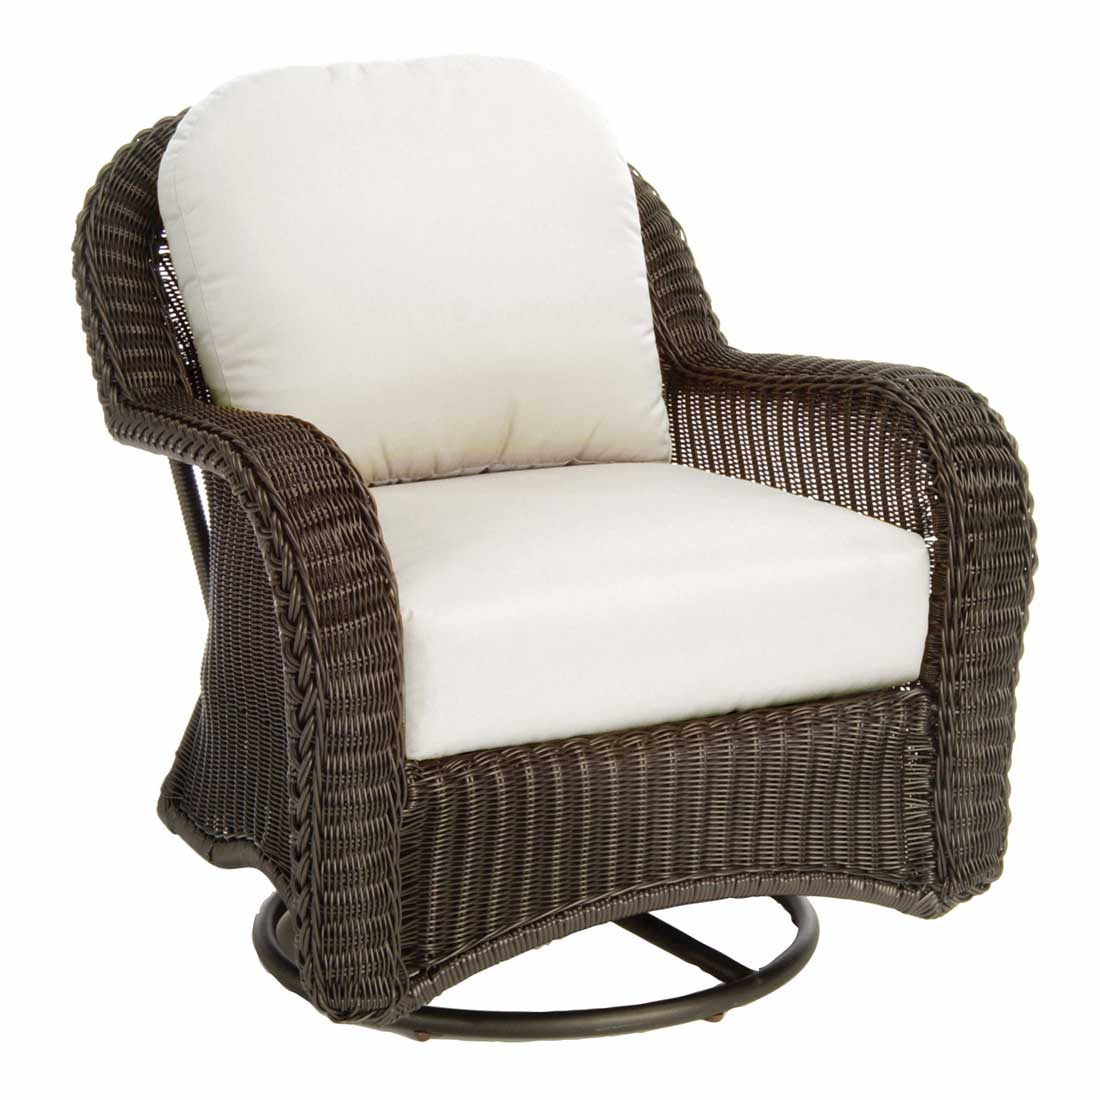 Classic Outdoor Wicker Swivel Glider